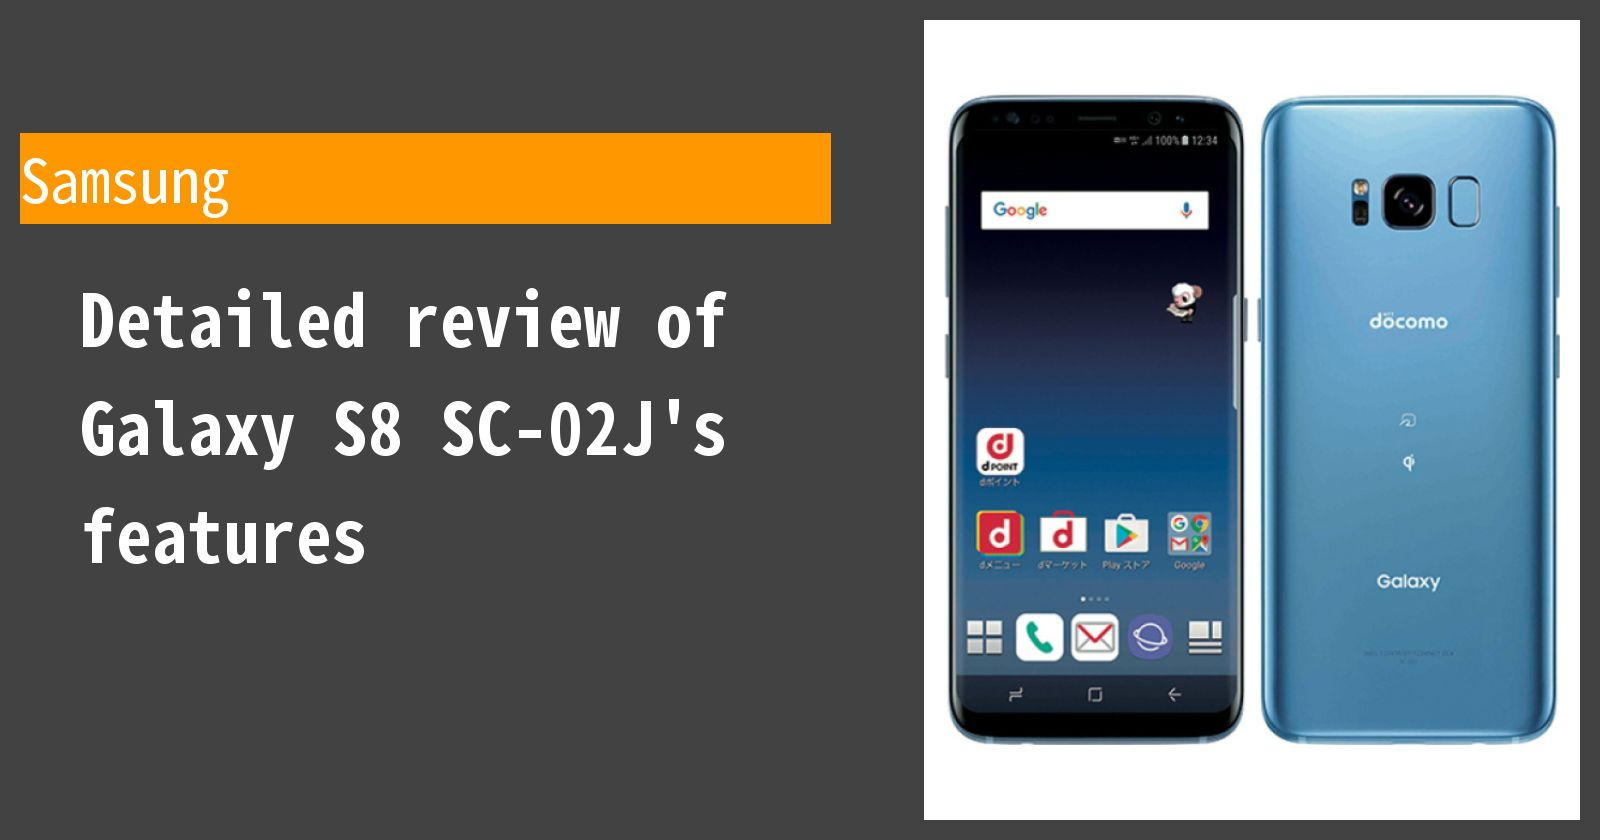 Detailed review of Galaxy S8 SC-02J docomo's features